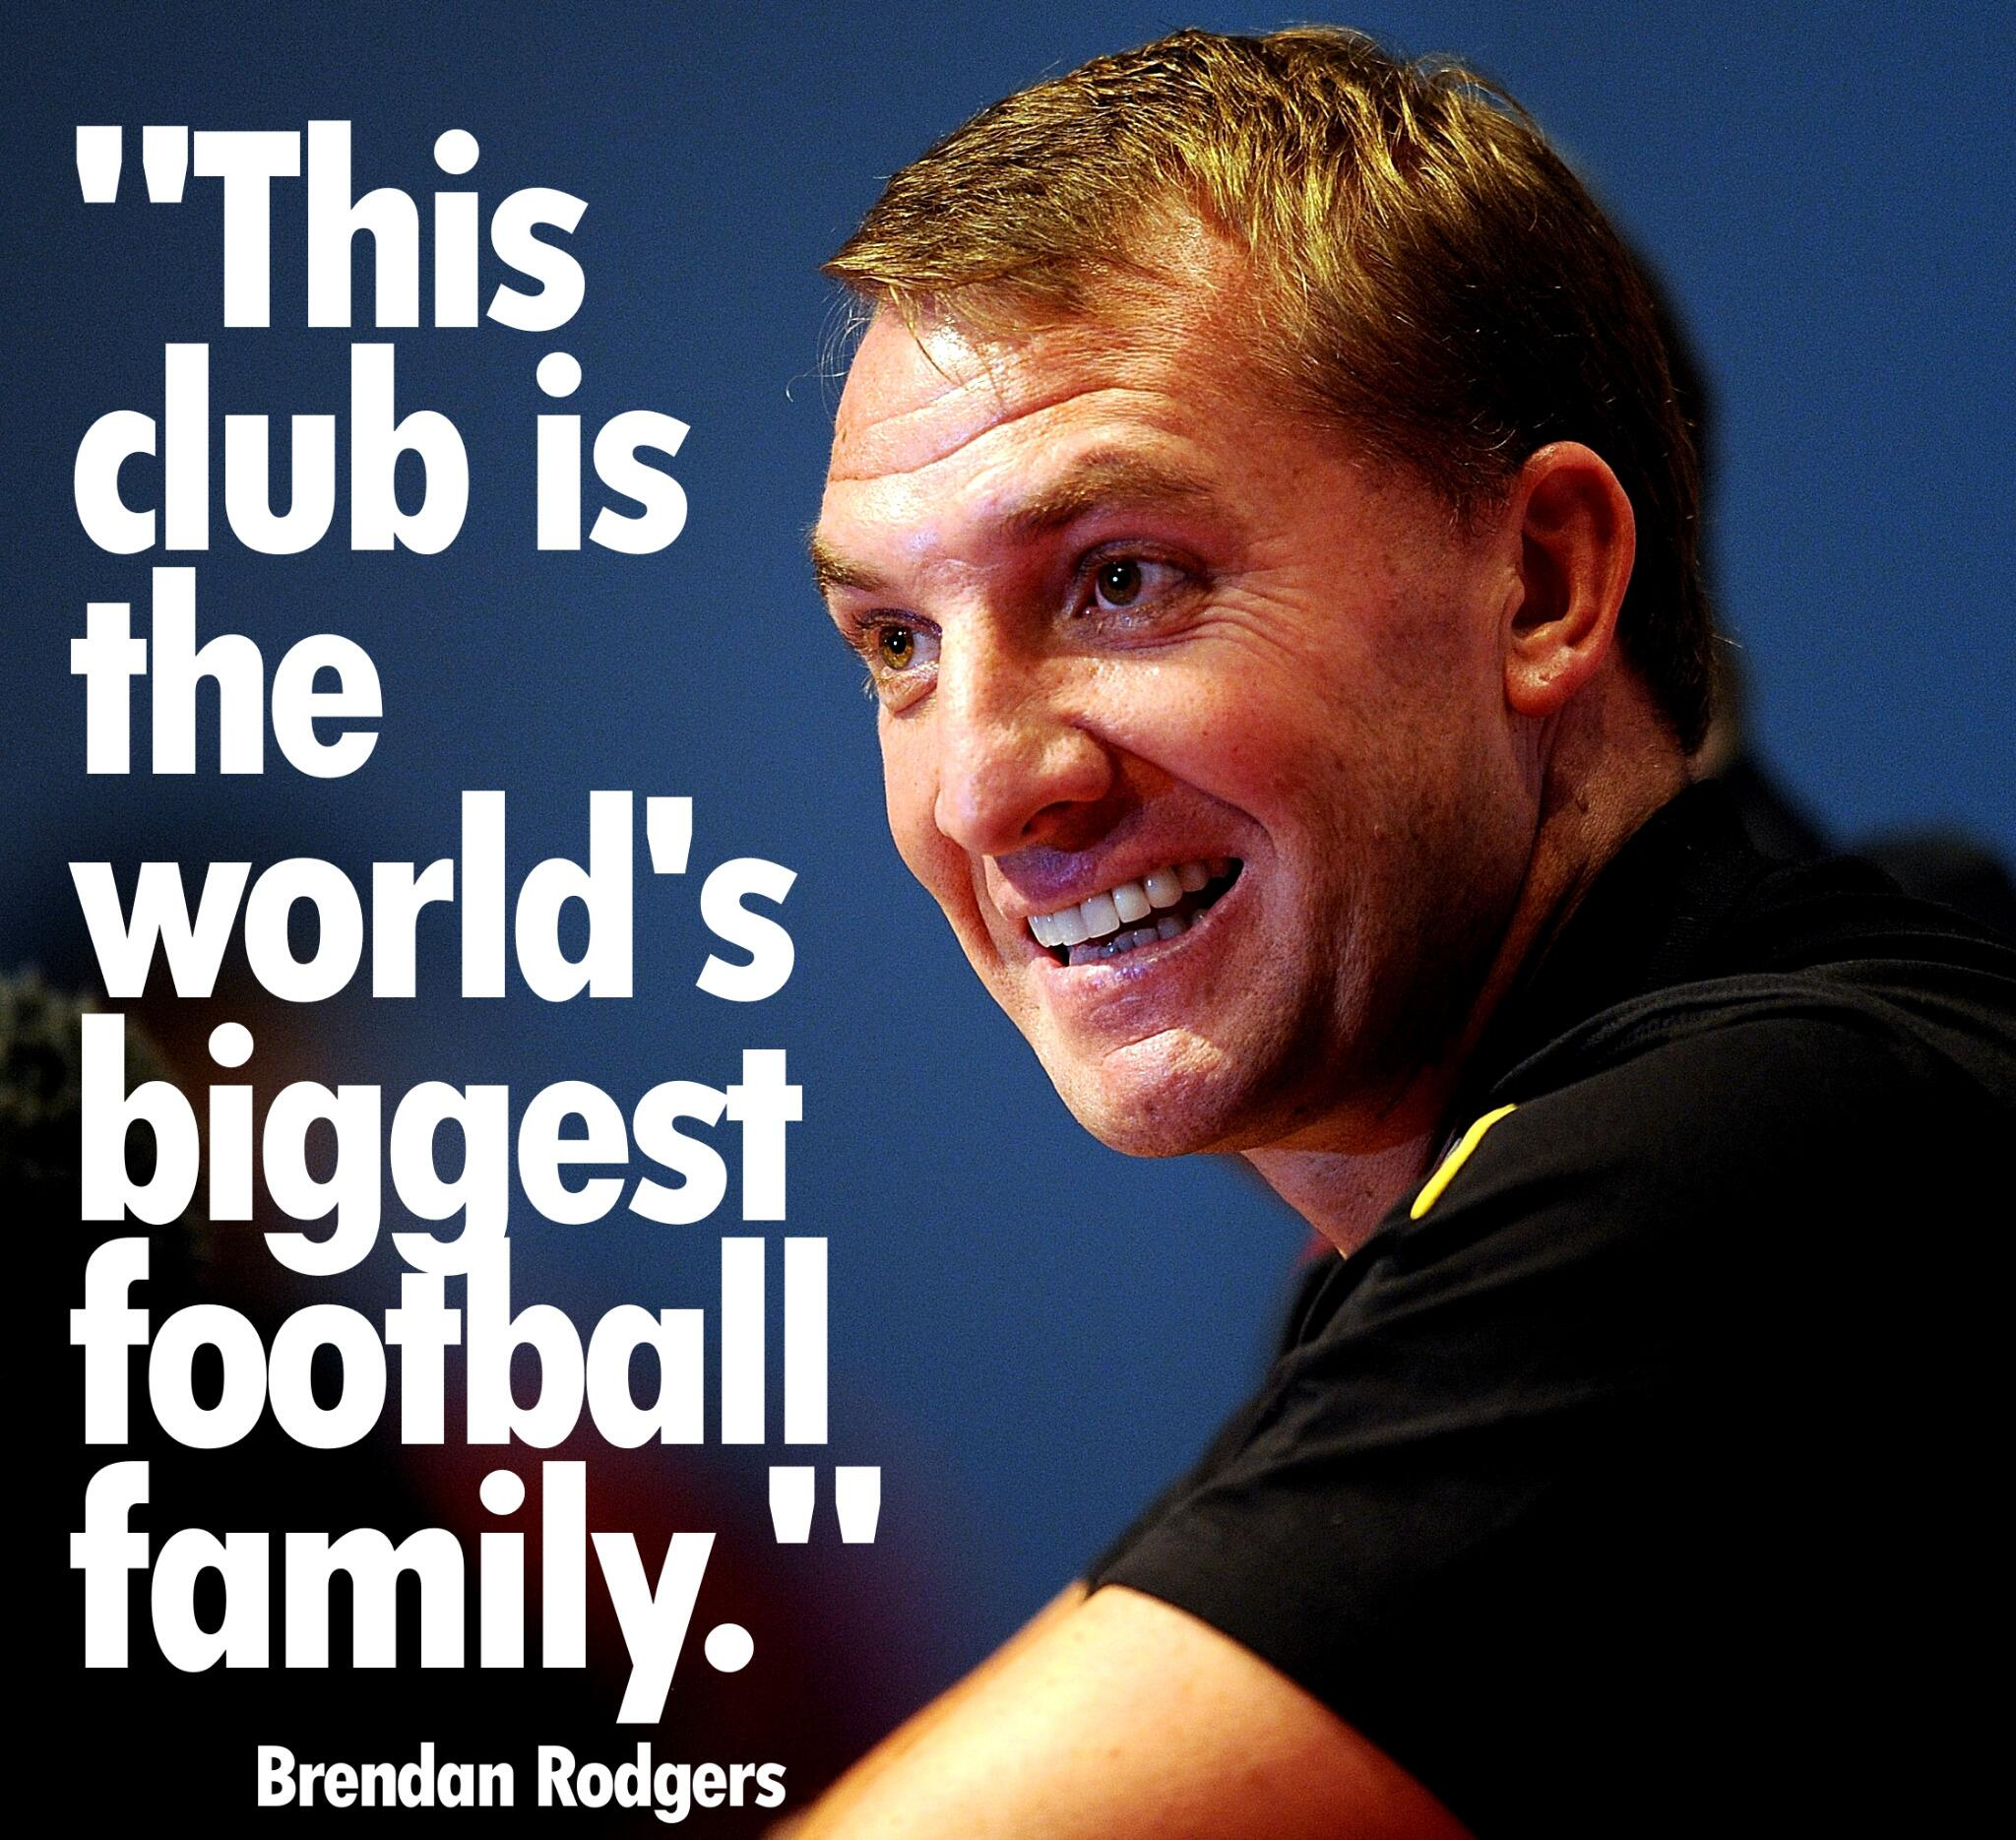 Quote from the boss ahead of the final day of the #lfctour tomorrow: http://t.co/QdnZV7kRnM